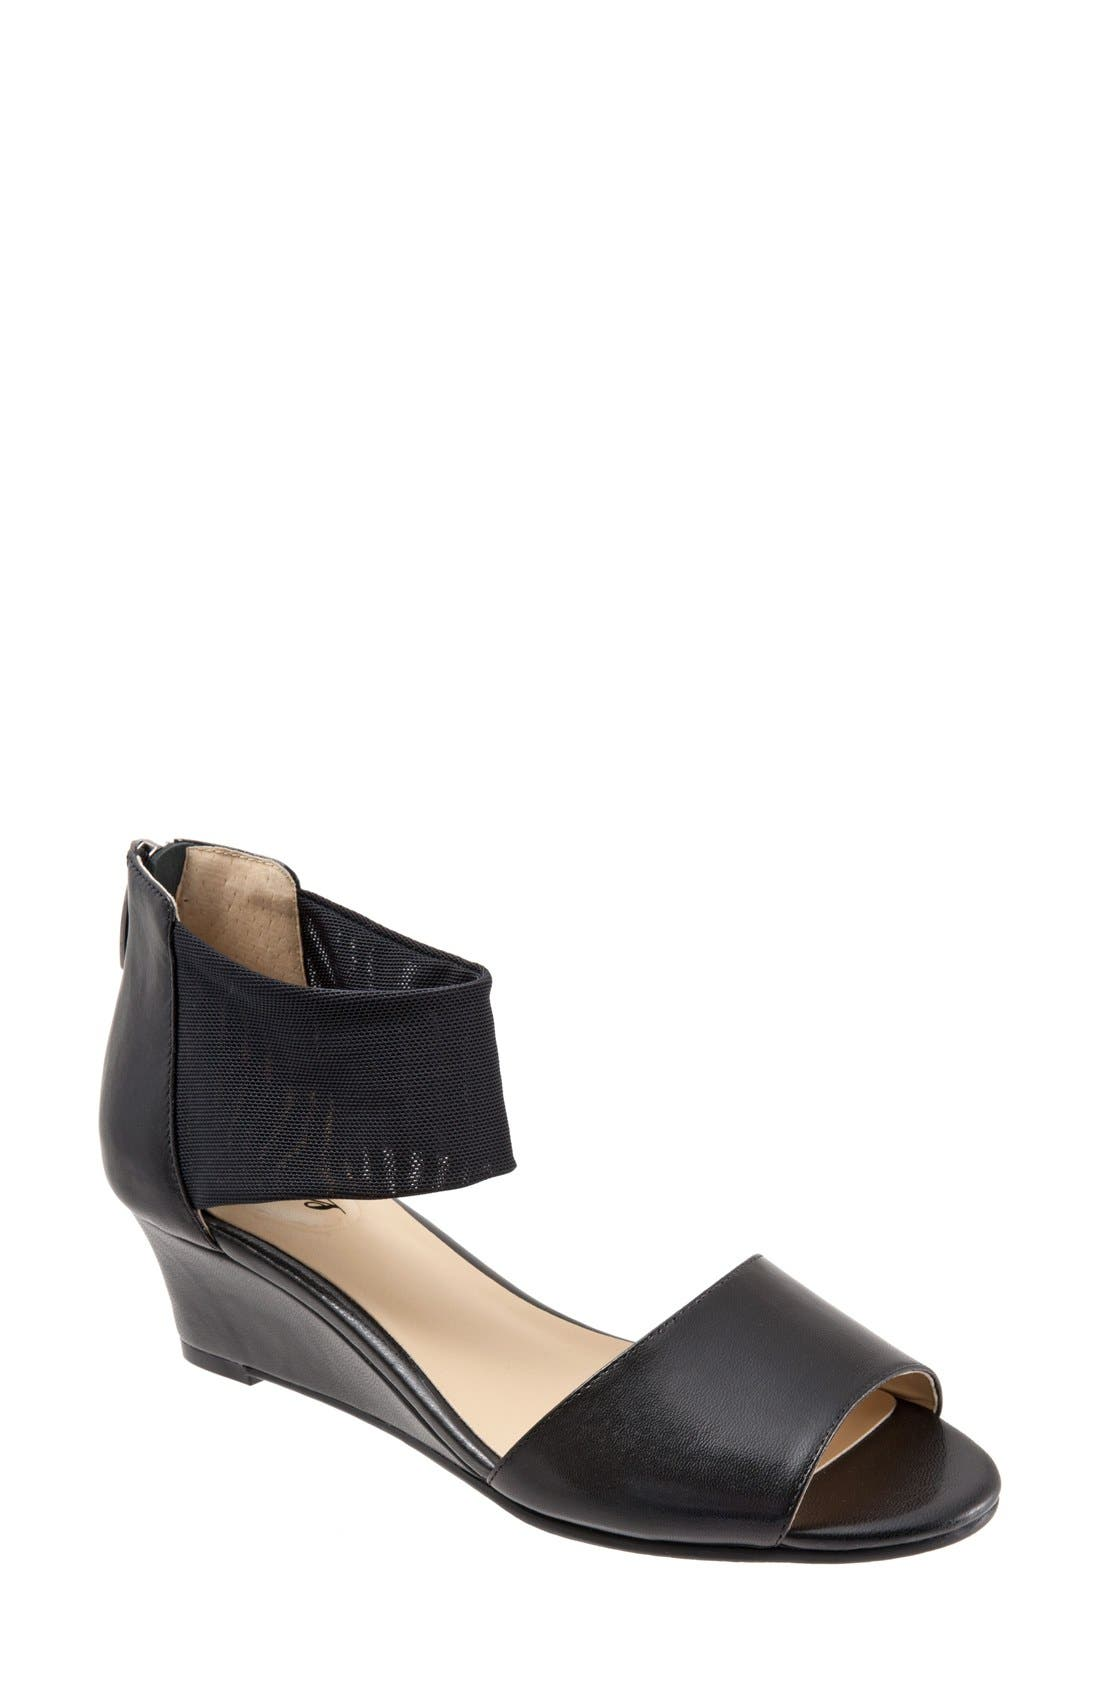 Trotters 'Maddy' Ankle Cuff Wedge Sandal (Women)